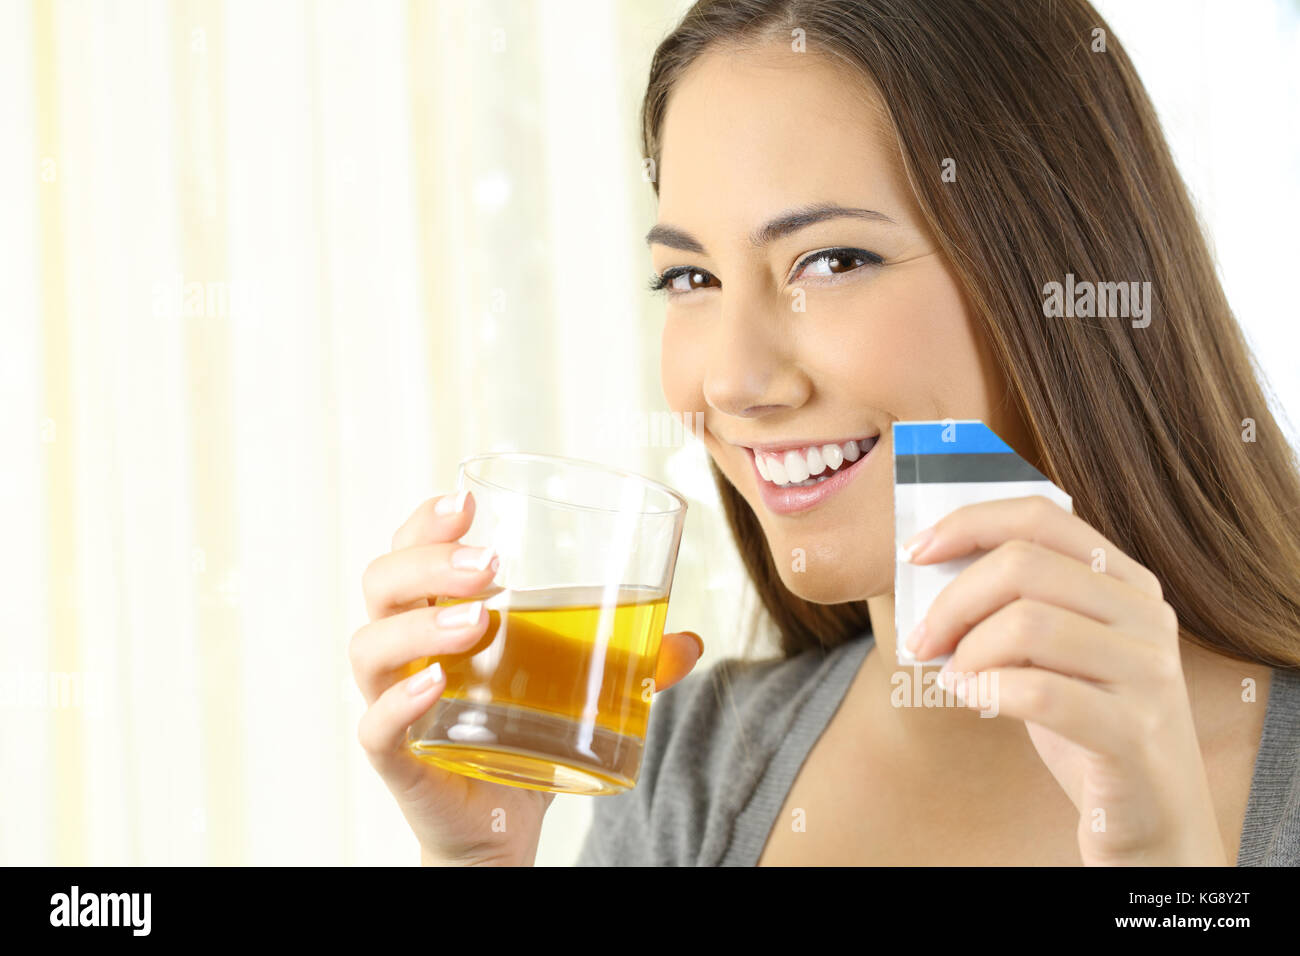 Happy woman posing holding a glass of soluble orange liquid medicine in a house interior - Stock Image